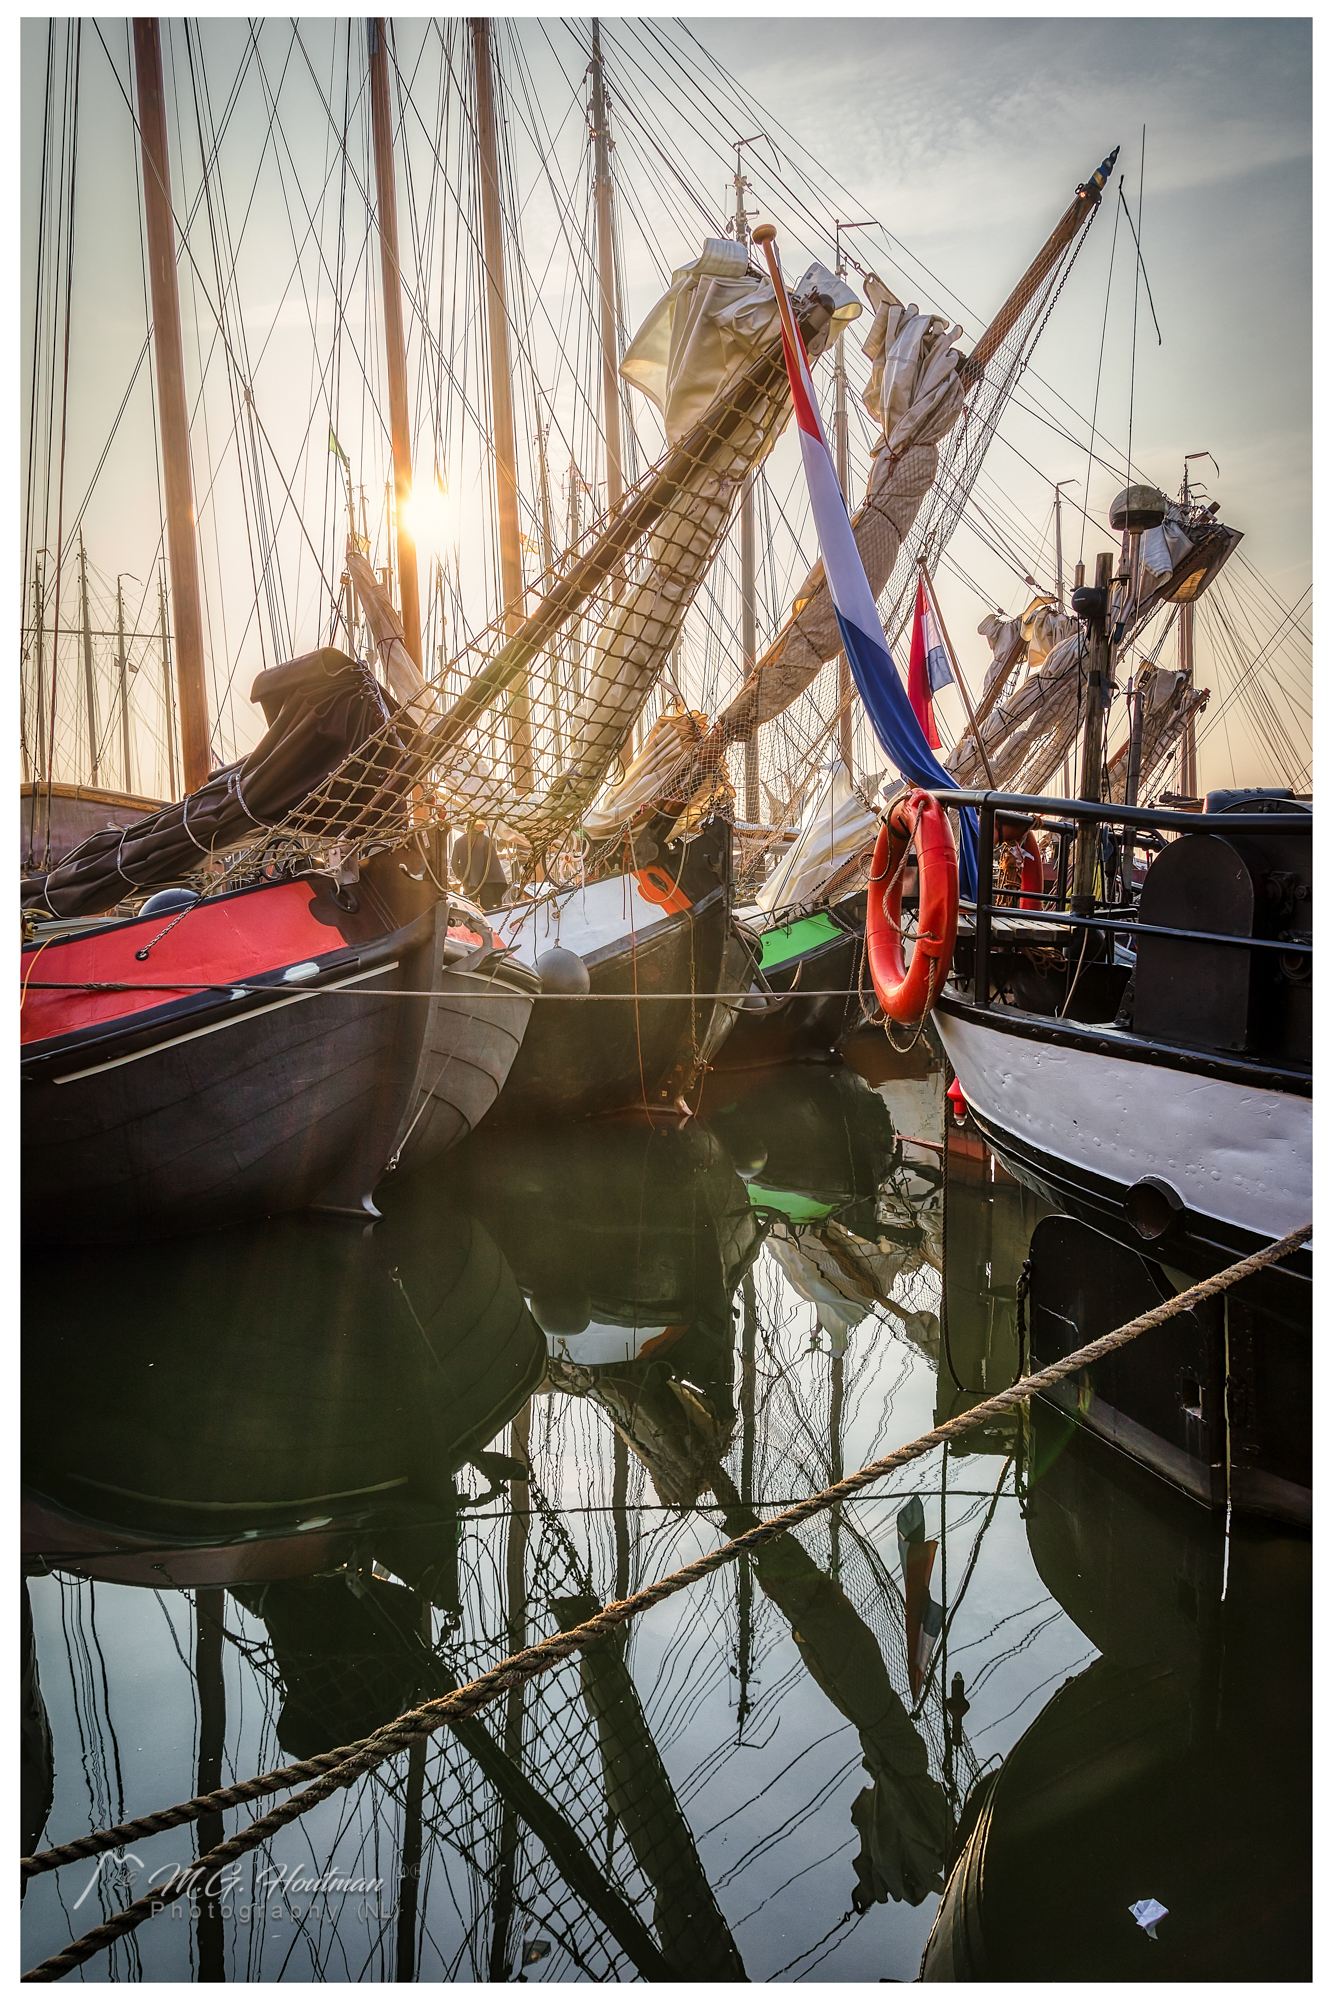 Some boats of the Pieperrace - Volendam